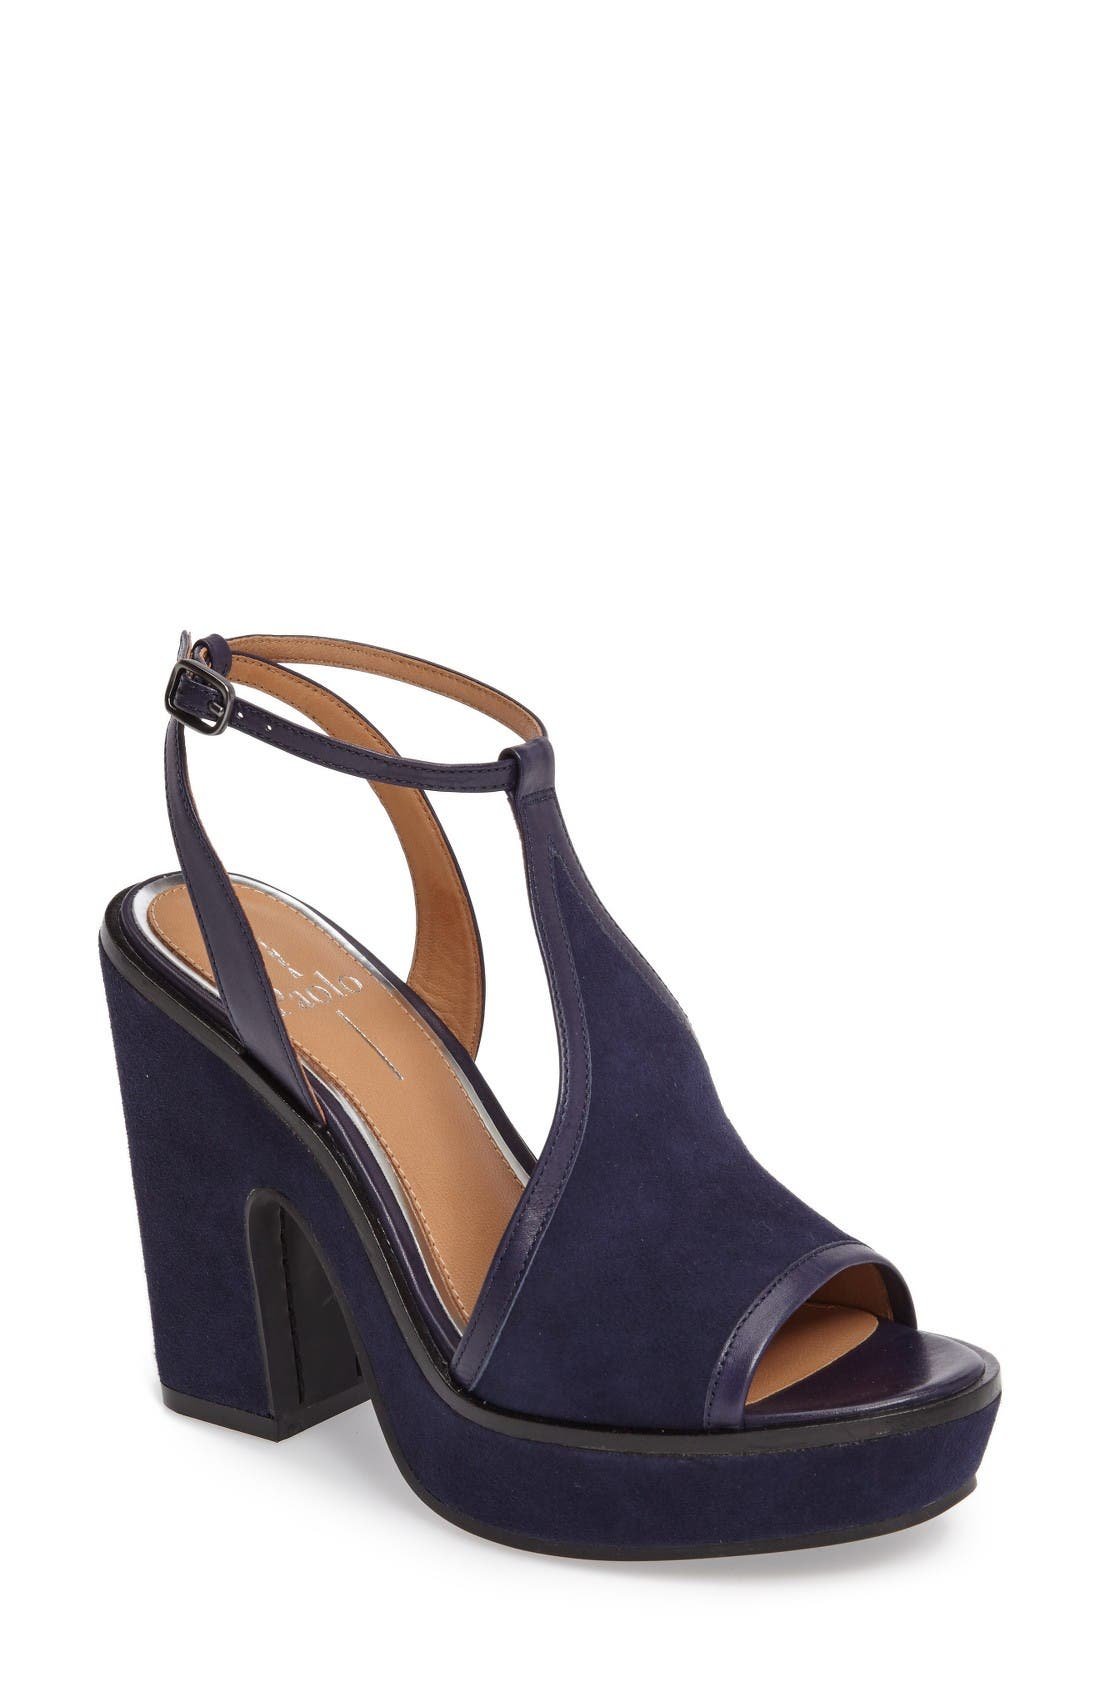 Alternate Image 1 Selected - Linea Paolo India T-Strap Platform Sandal (Women)